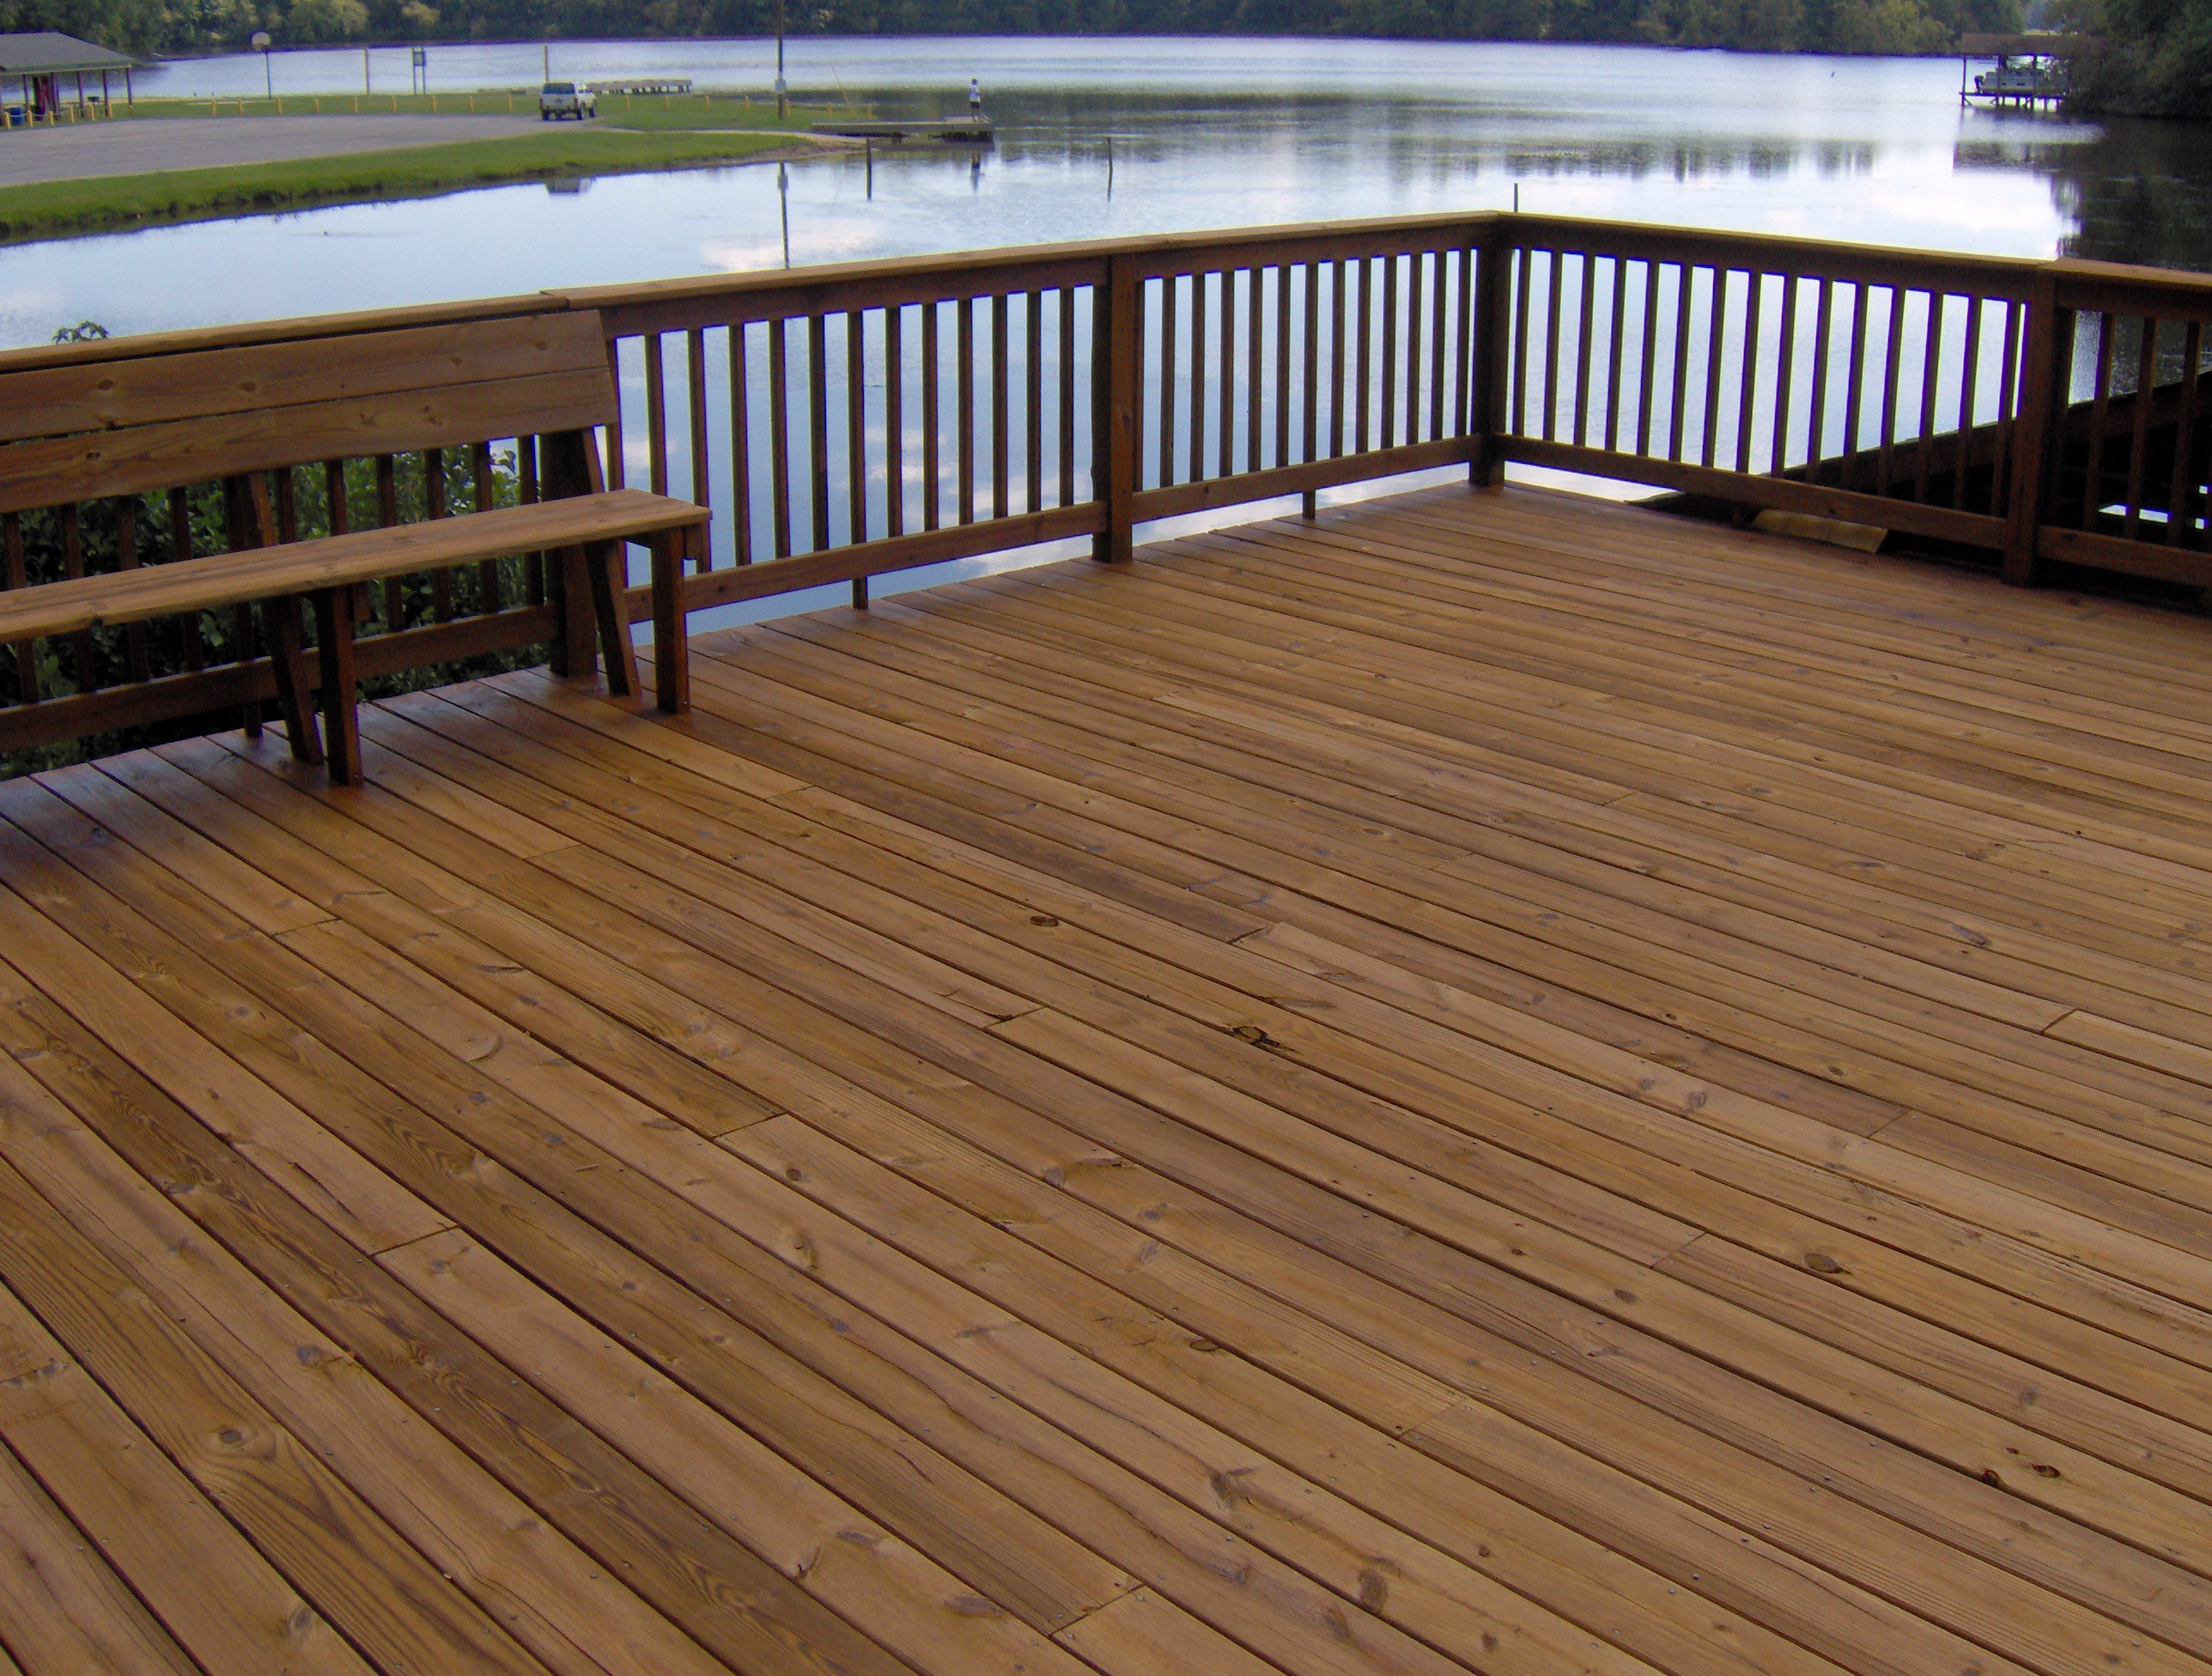 Decks docks renew crew of lake gaston kerr lake and for Best timber for decking